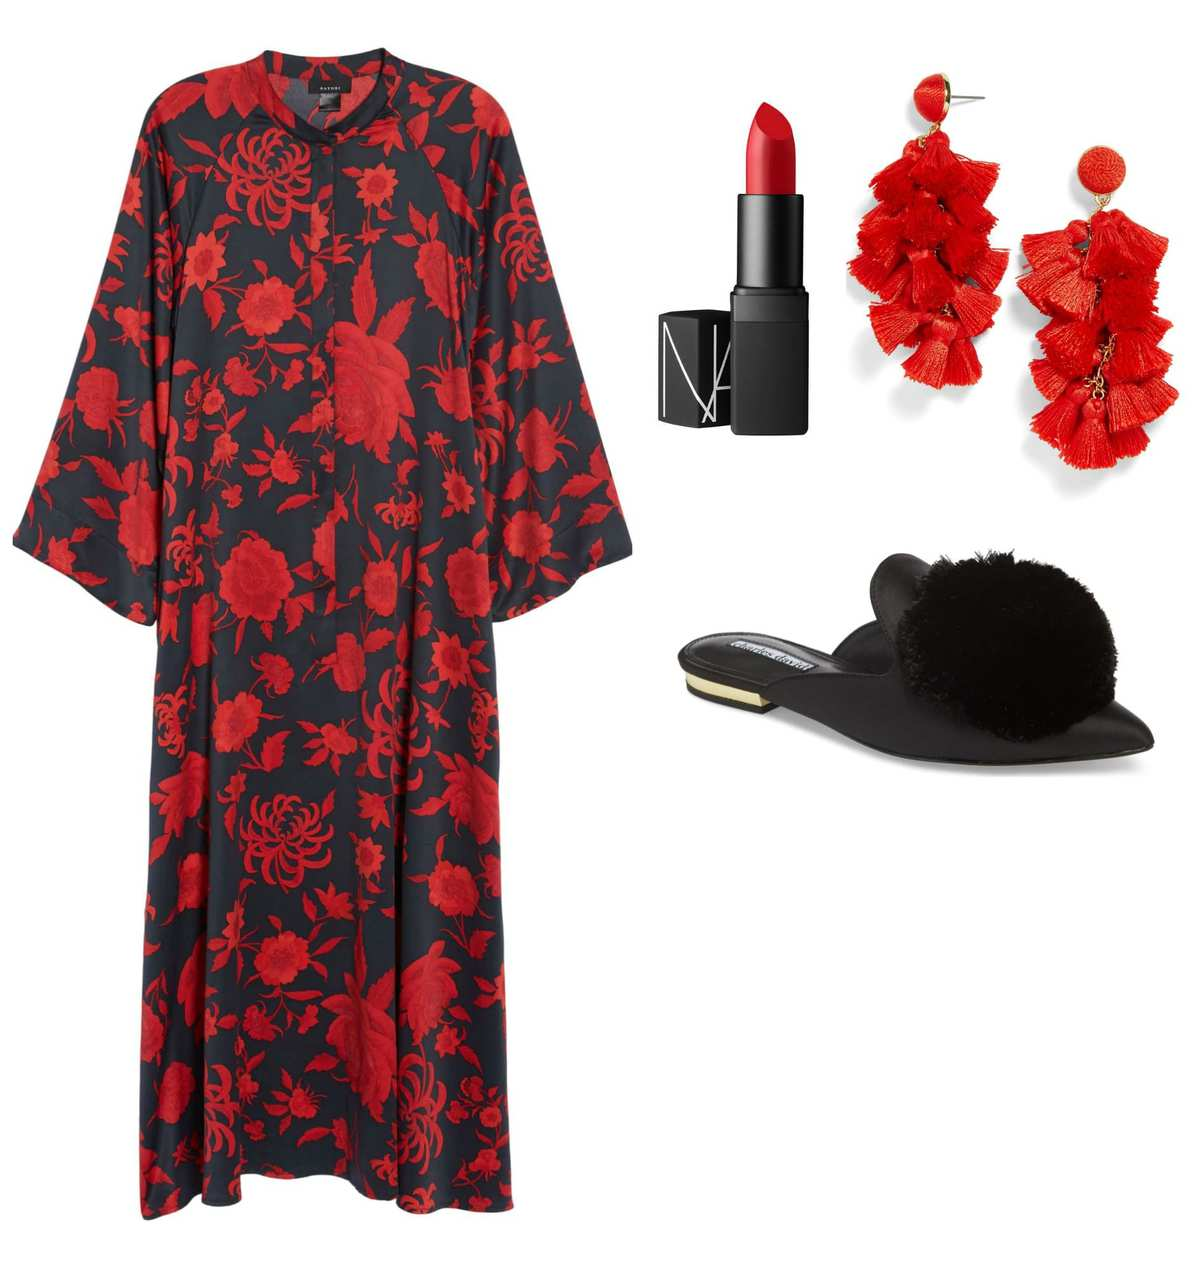 What to wear when hosting a party - consider a caftan for comfortable glam